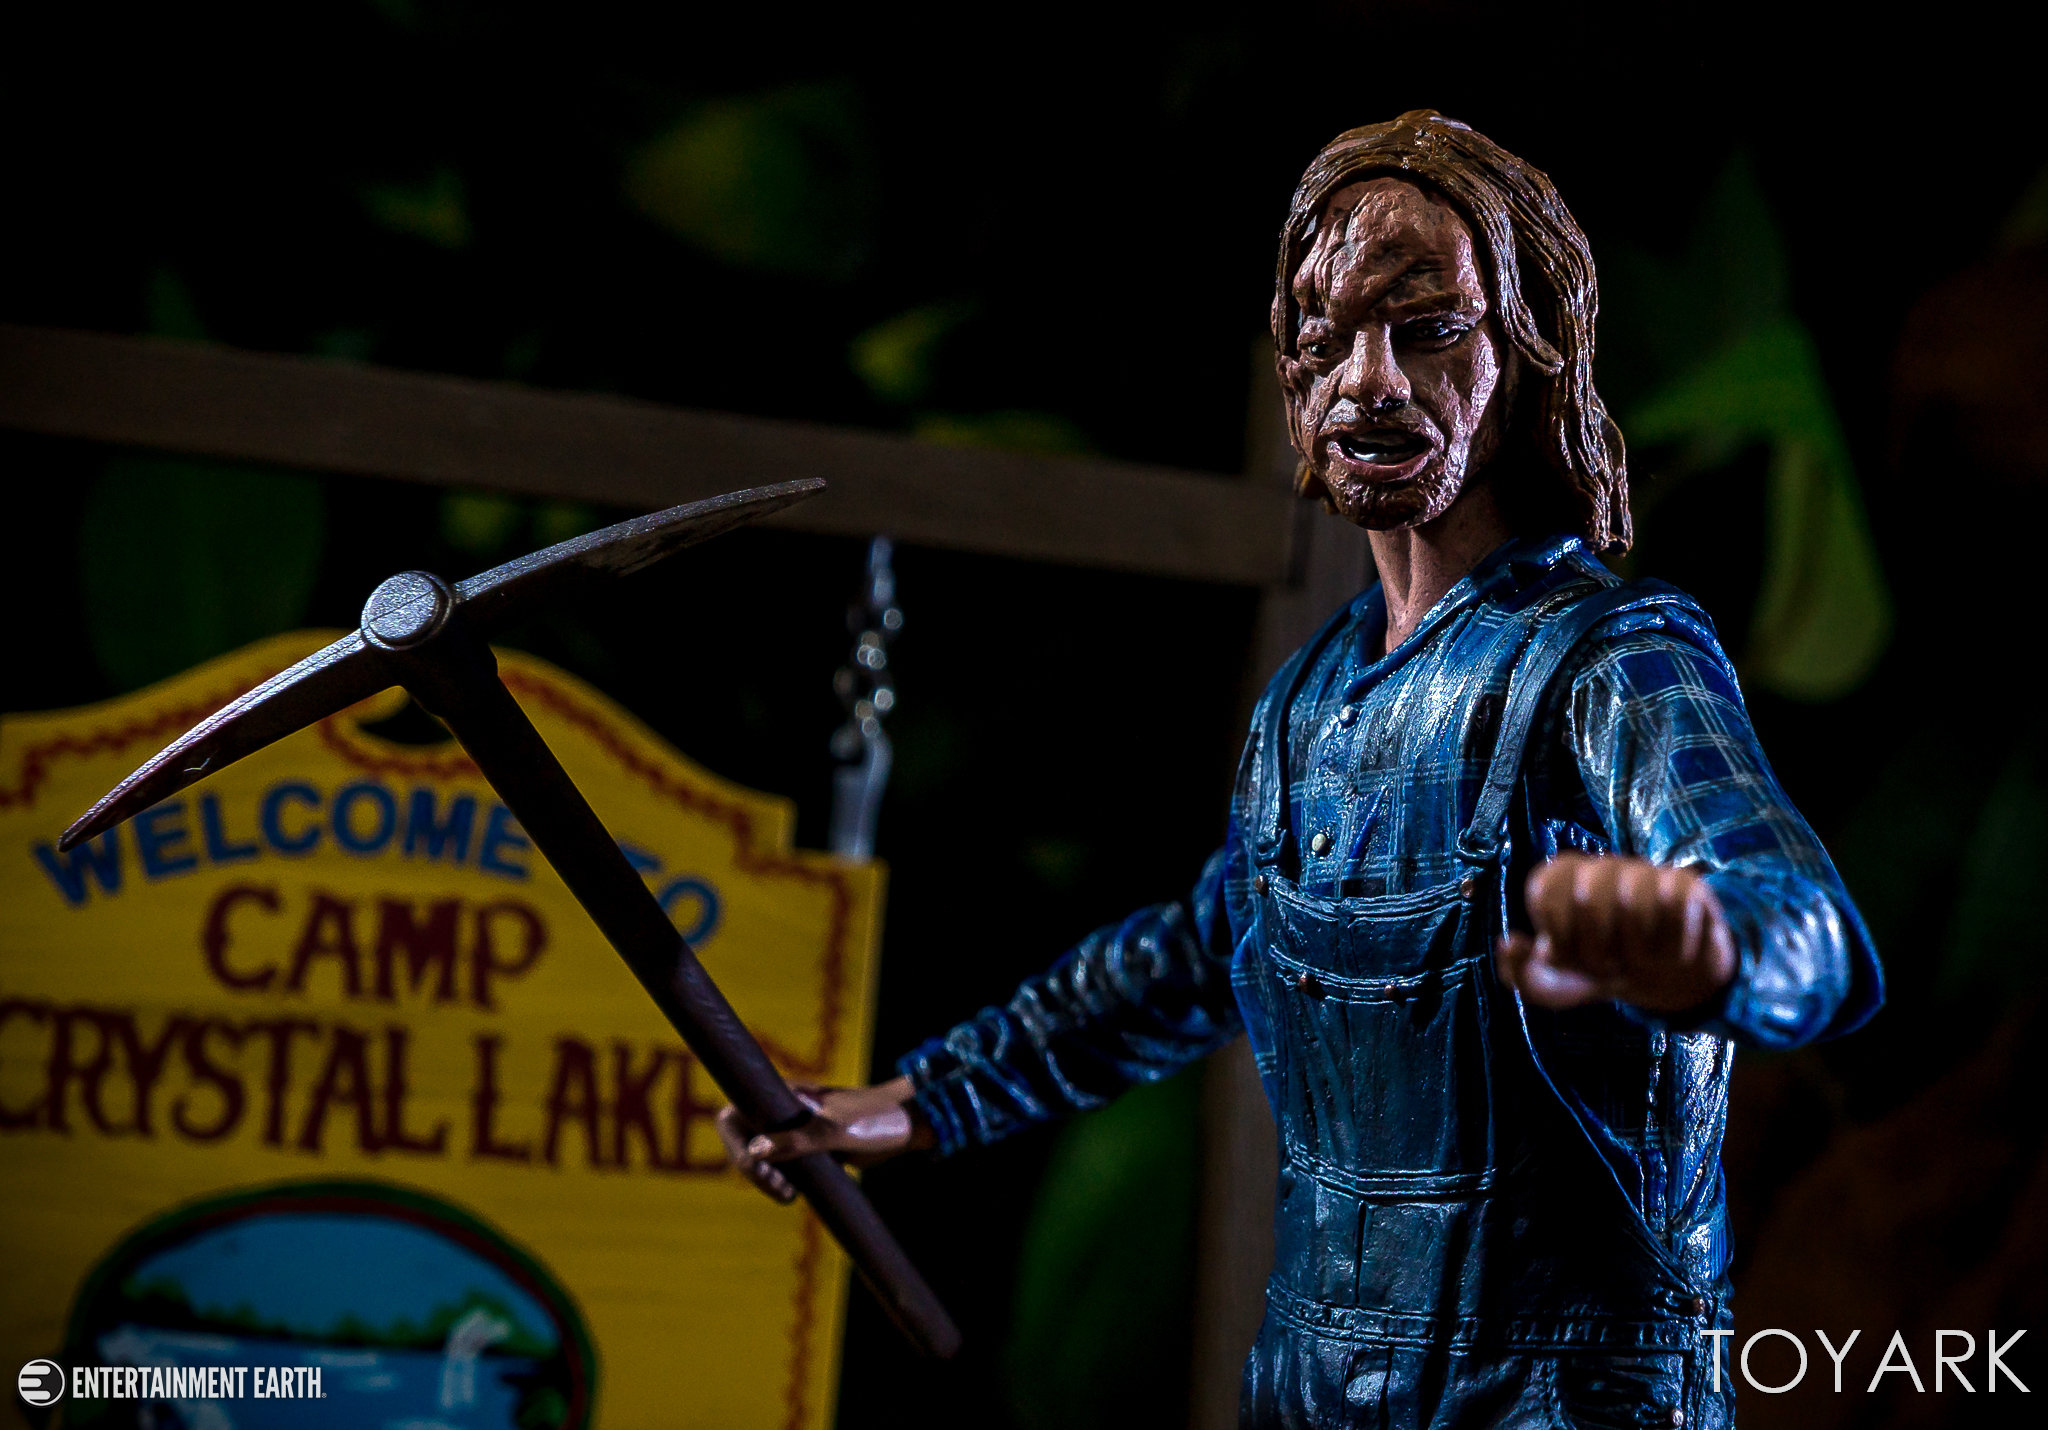 https://news.toyark.com/wp-content/uploads/sites/4/2018/08/NECA-Friday-the-13th-Part-2-Jason-027.jpg